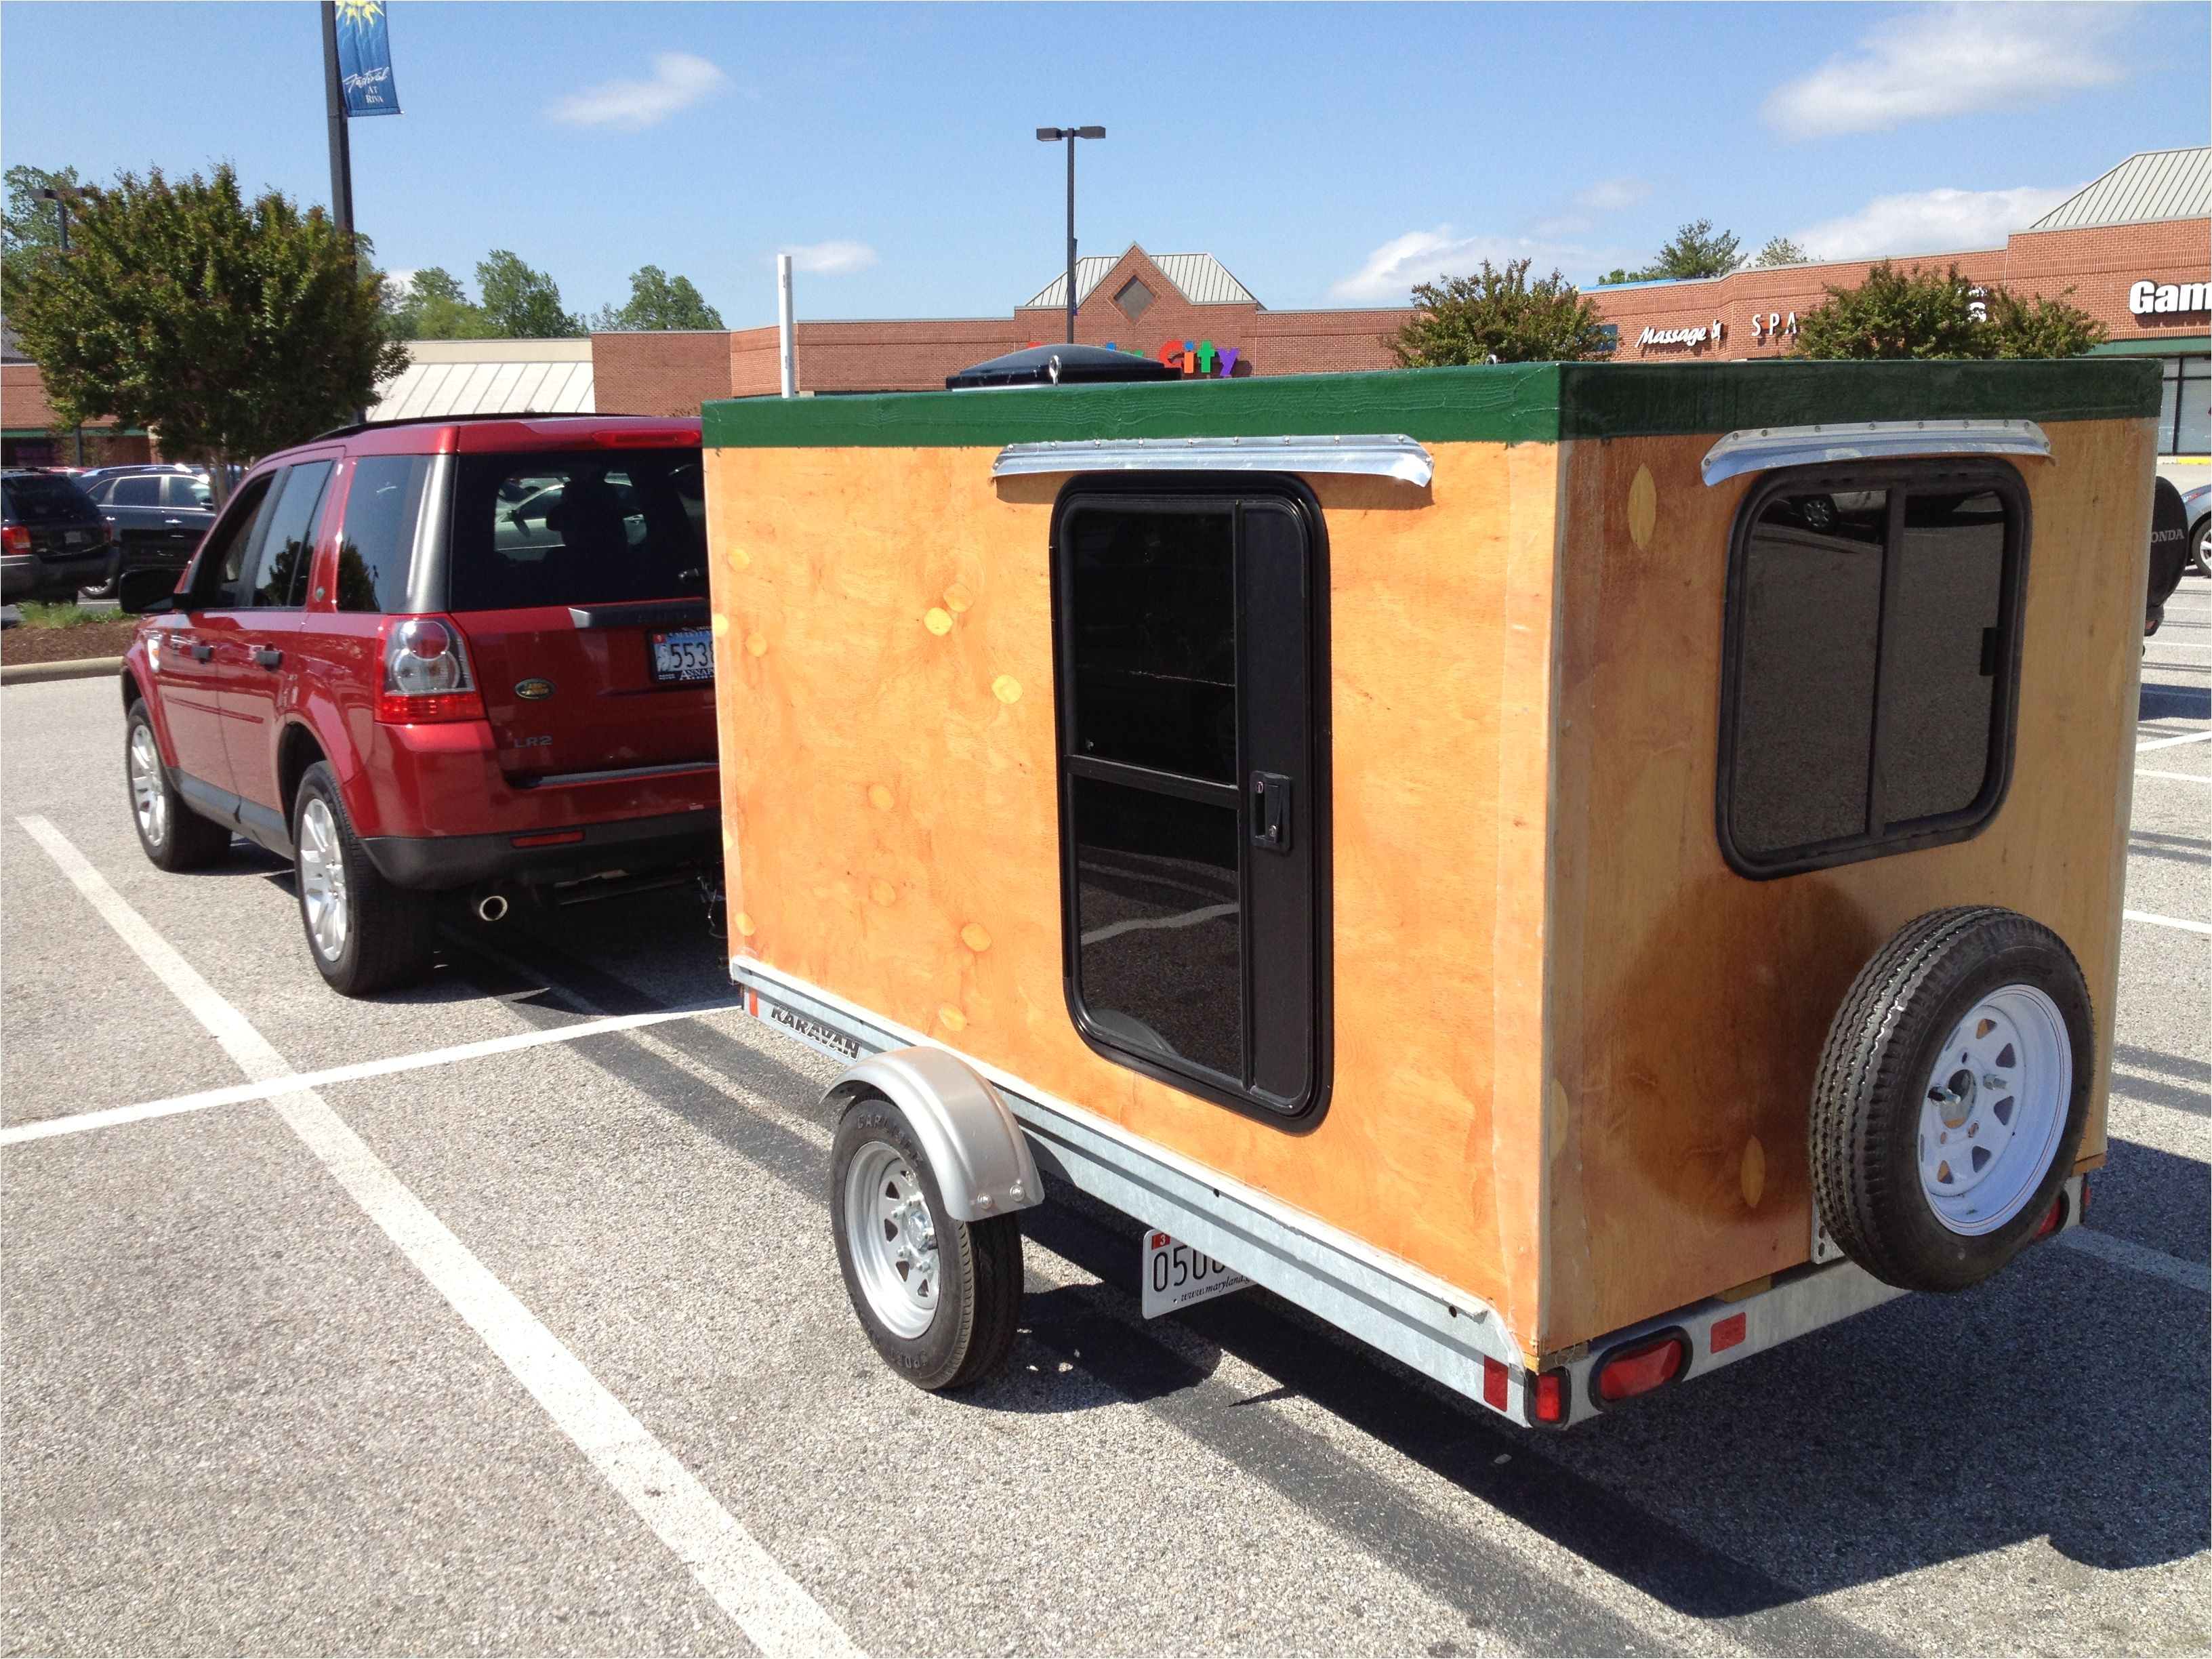 my homemade camper not very aerodynamic but lots of room inside to carry stuff